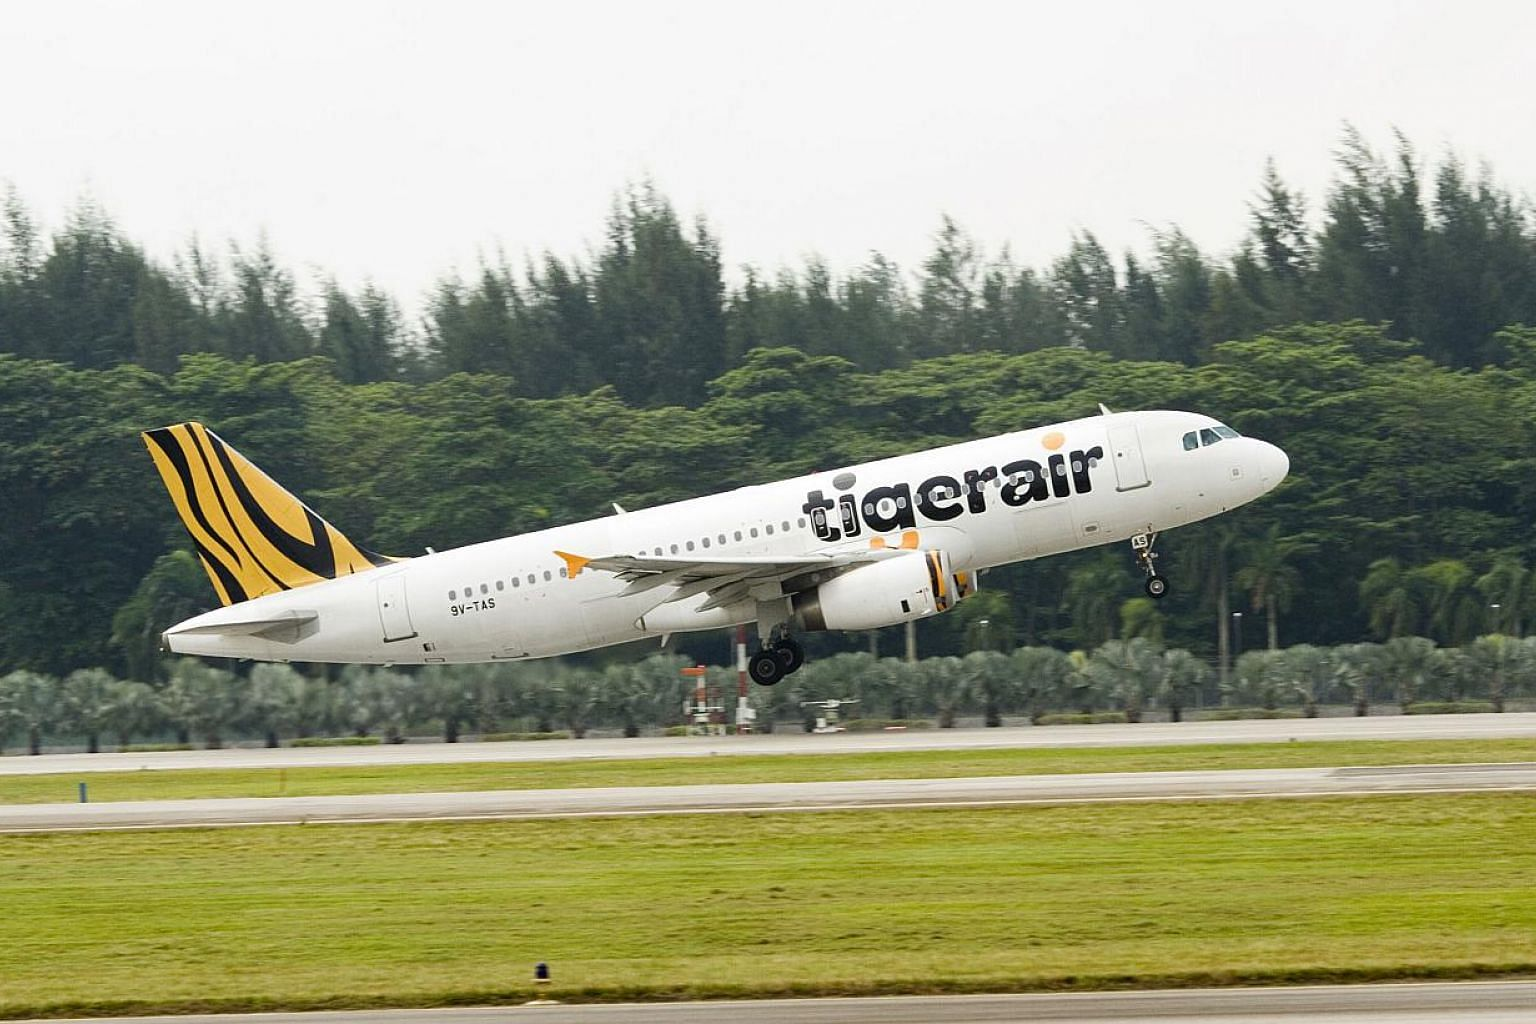 The aircraft (not pictured) landed safely in Haikou three hours later after two fly-pasts. -- PHOTO: TIGERAIR